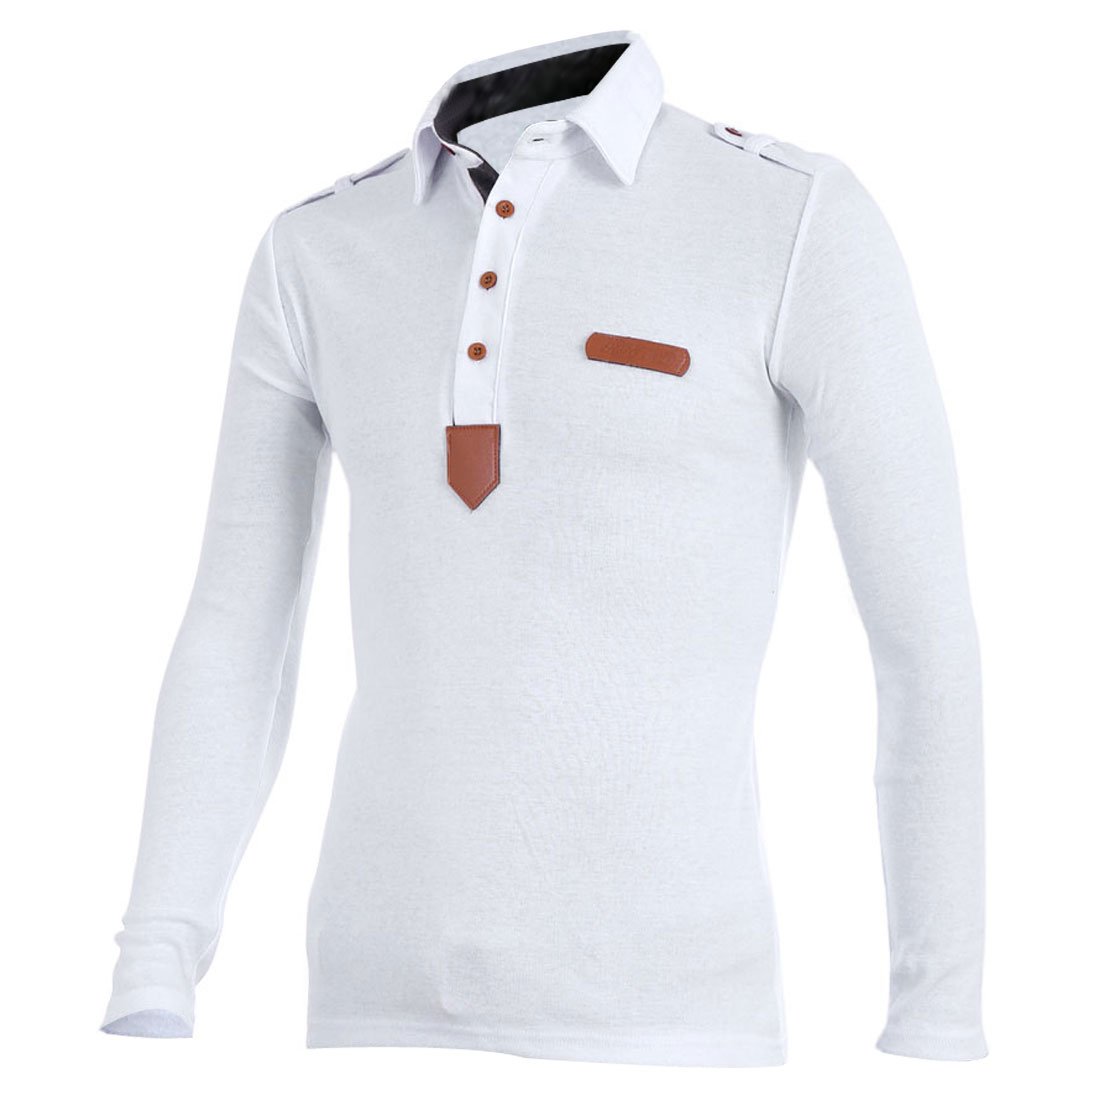 Men Long Sleeve Four Buttons Front Slim Fit Polo Shirt White S